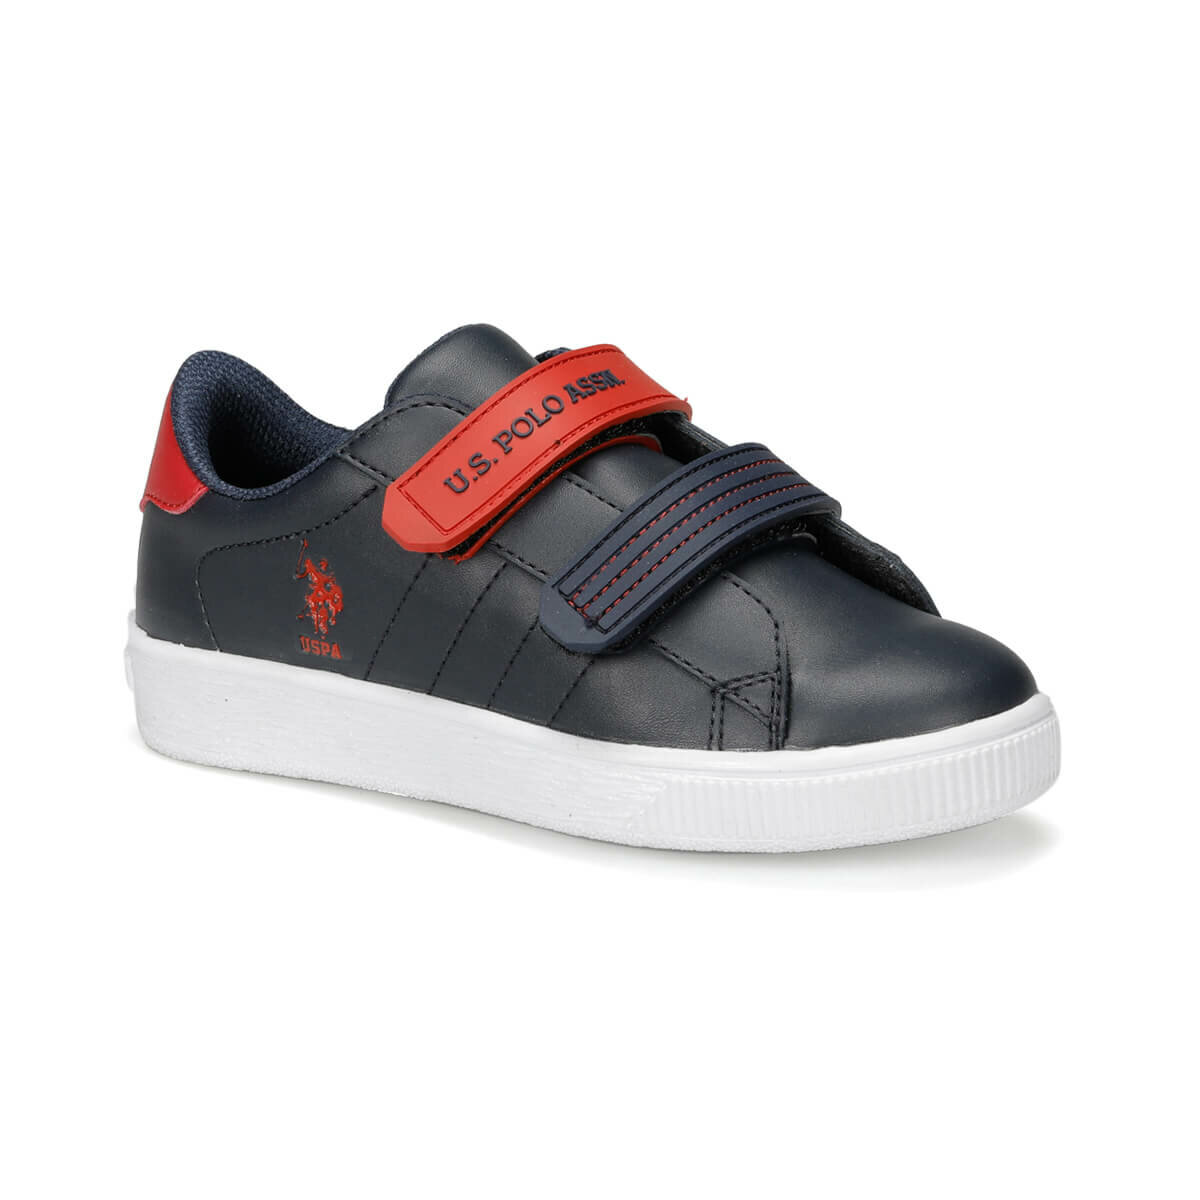 FLO CINO 9PR Navy Blue Male Child Shoes U.S. POLO ASSN.